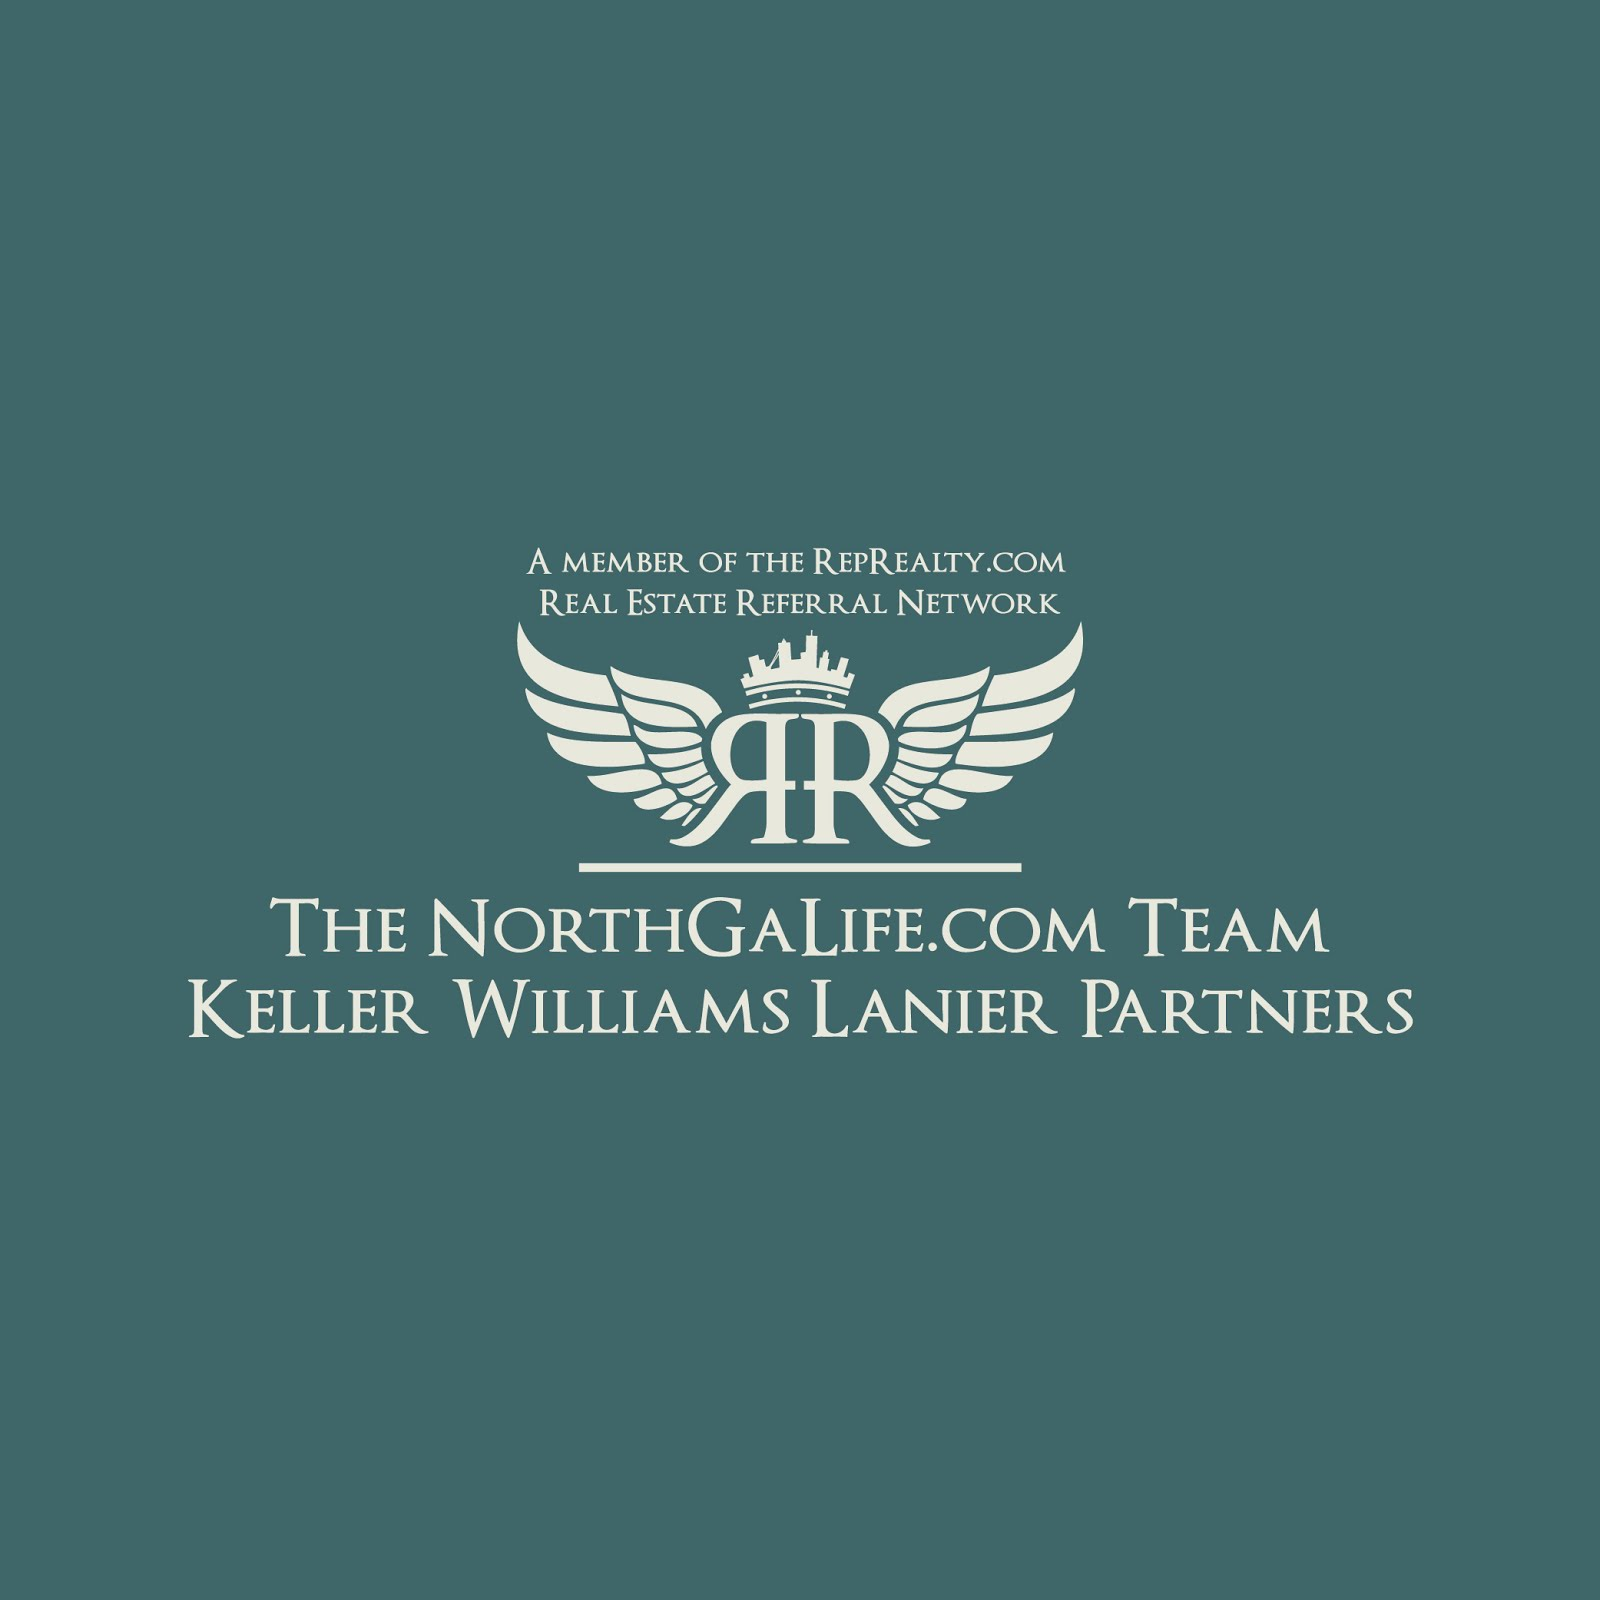 Laura Carter - Keller Williams Lanier Partners